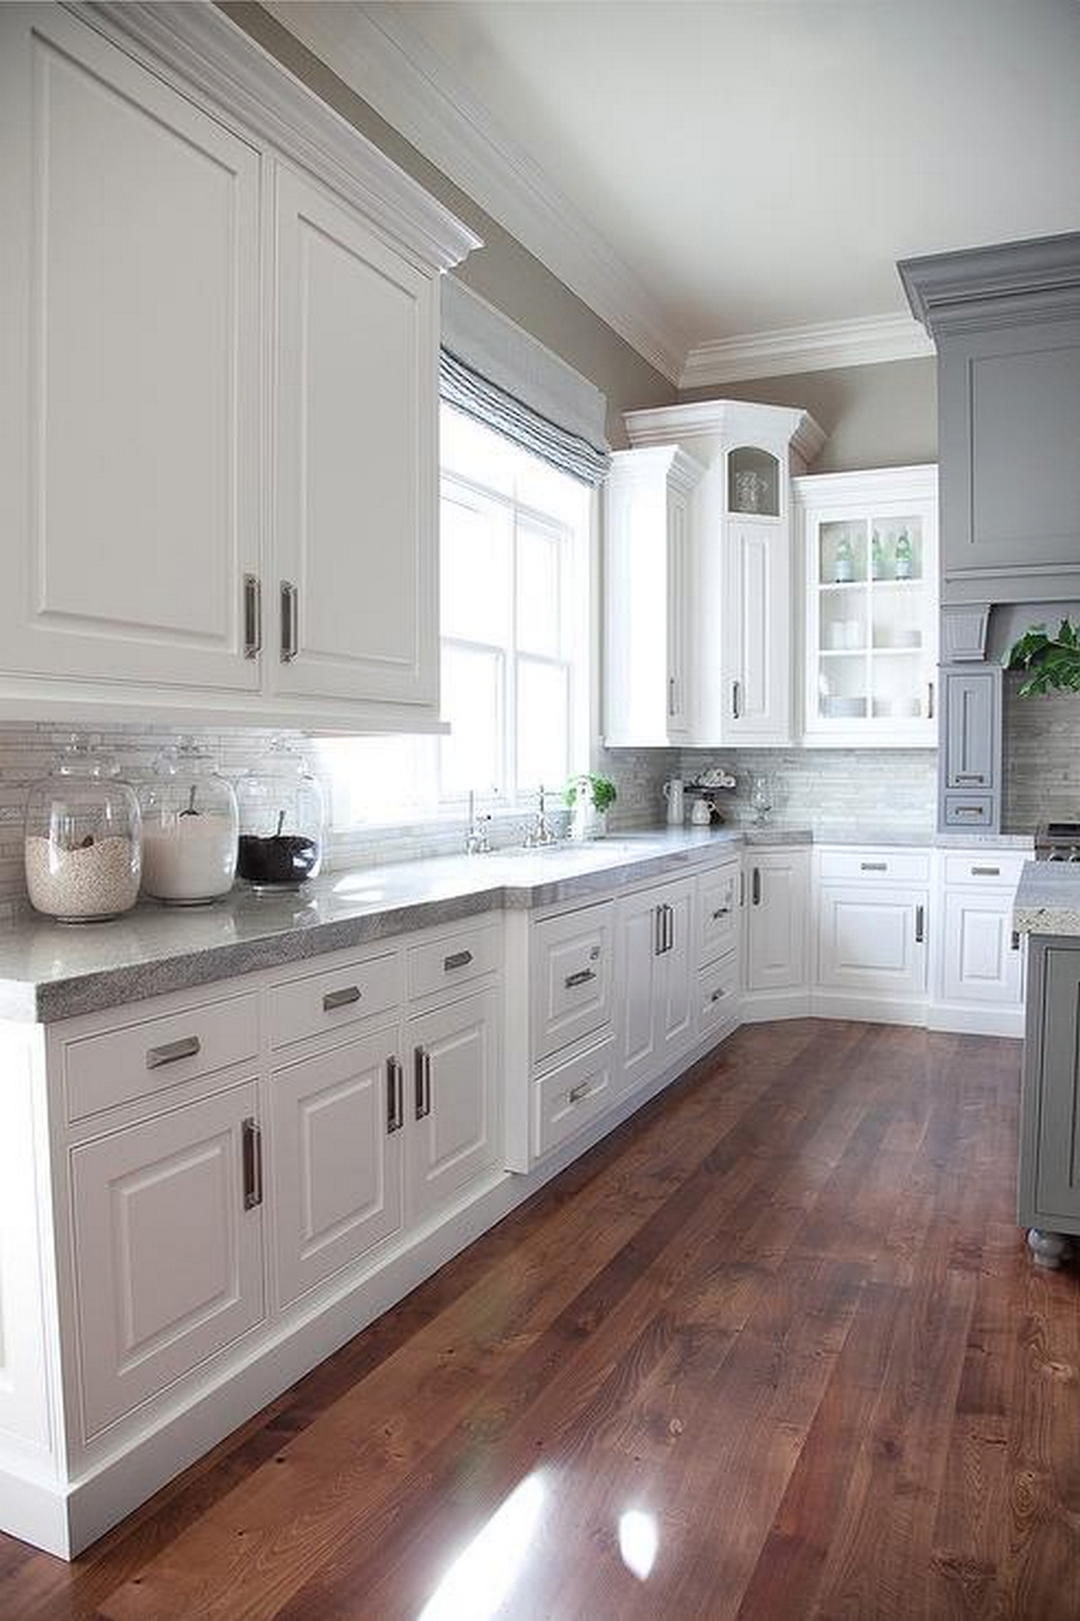 Why White Kitchen Interior Is Still Great For 2019 Latest Kitchen Designs Kitchen Design Trends White Kitchen Design